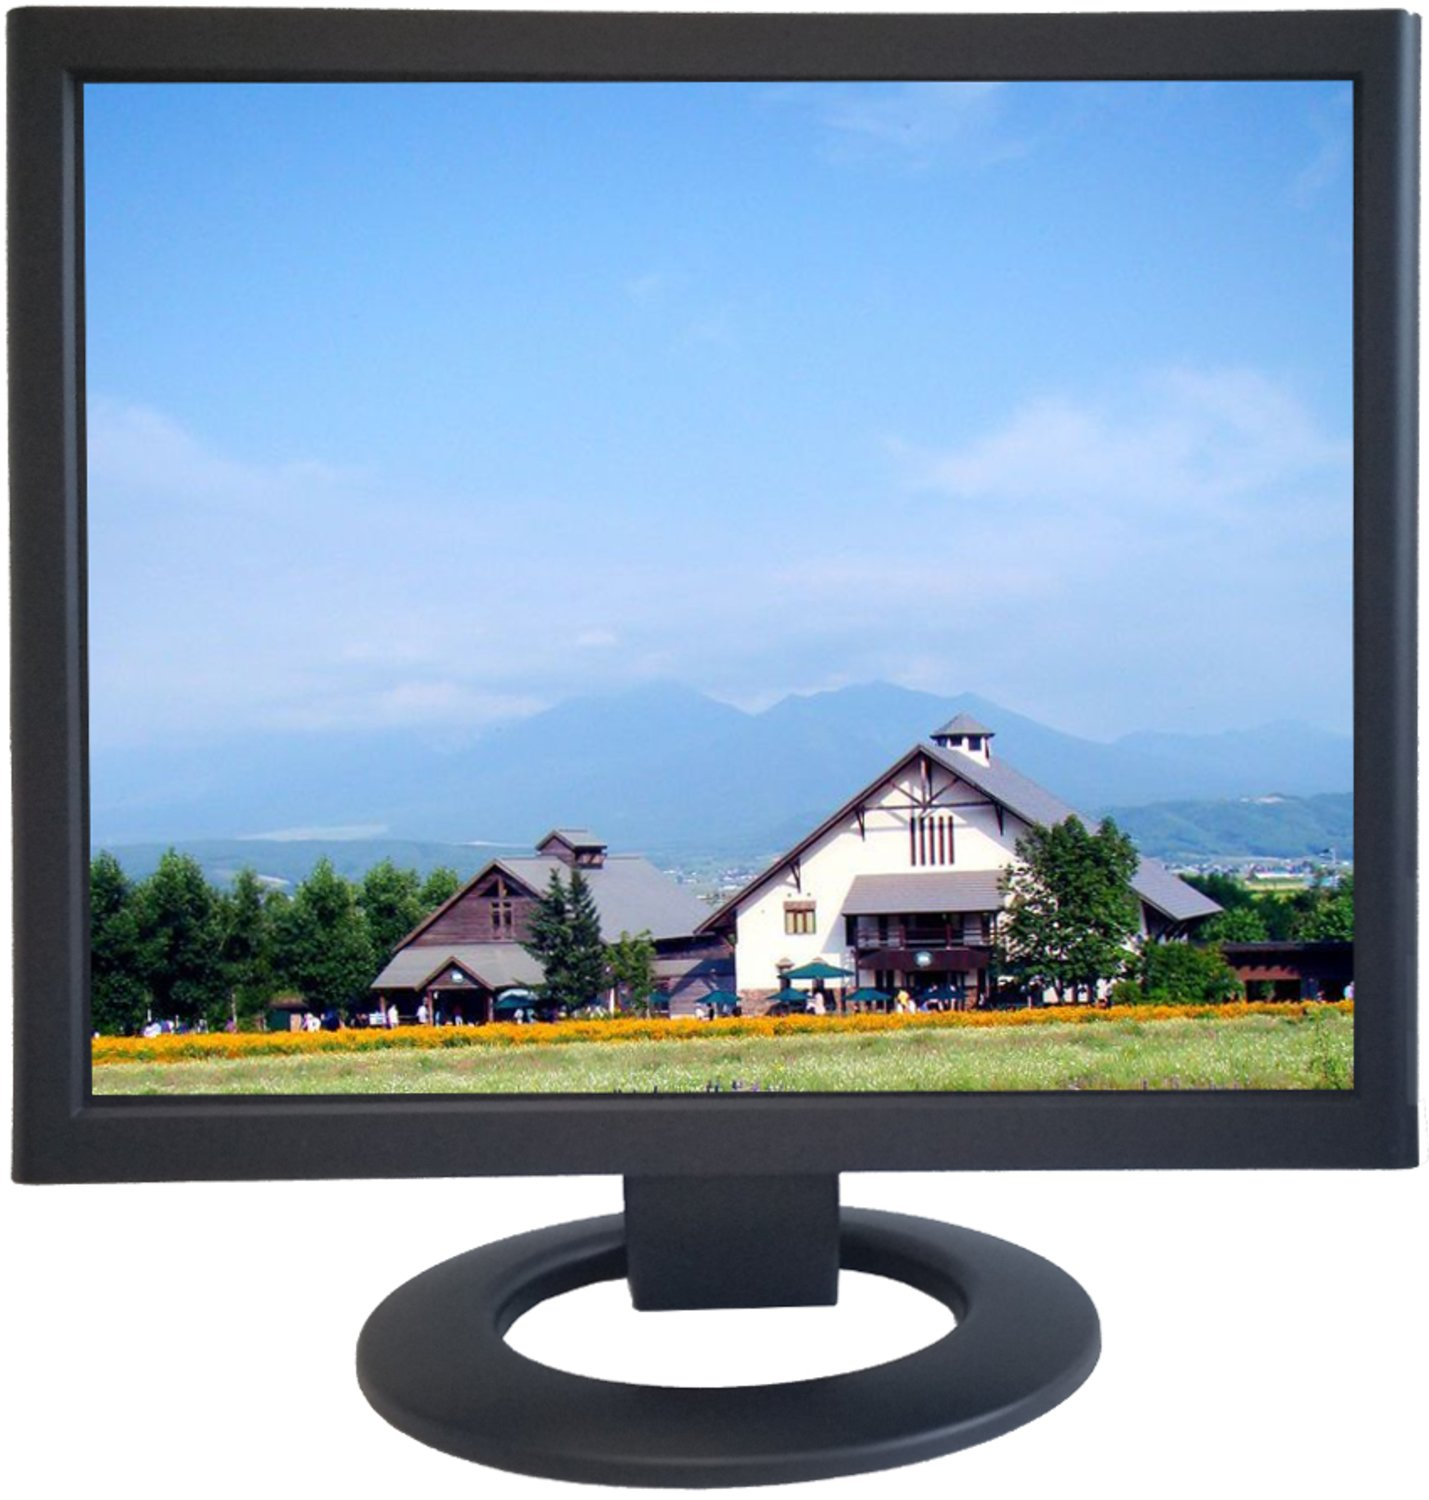 ViewEra V198HB TFT LCD Security Monitor 19'' Screen Size, VGA, 1 CH BNC in/Out, 1x HDMI, Resolution 1280 x 1024, Brightness 250 cd/m2, Contrast Ratio 1000:1, Response Time 5ms, Built-in Speaker by ViewEra